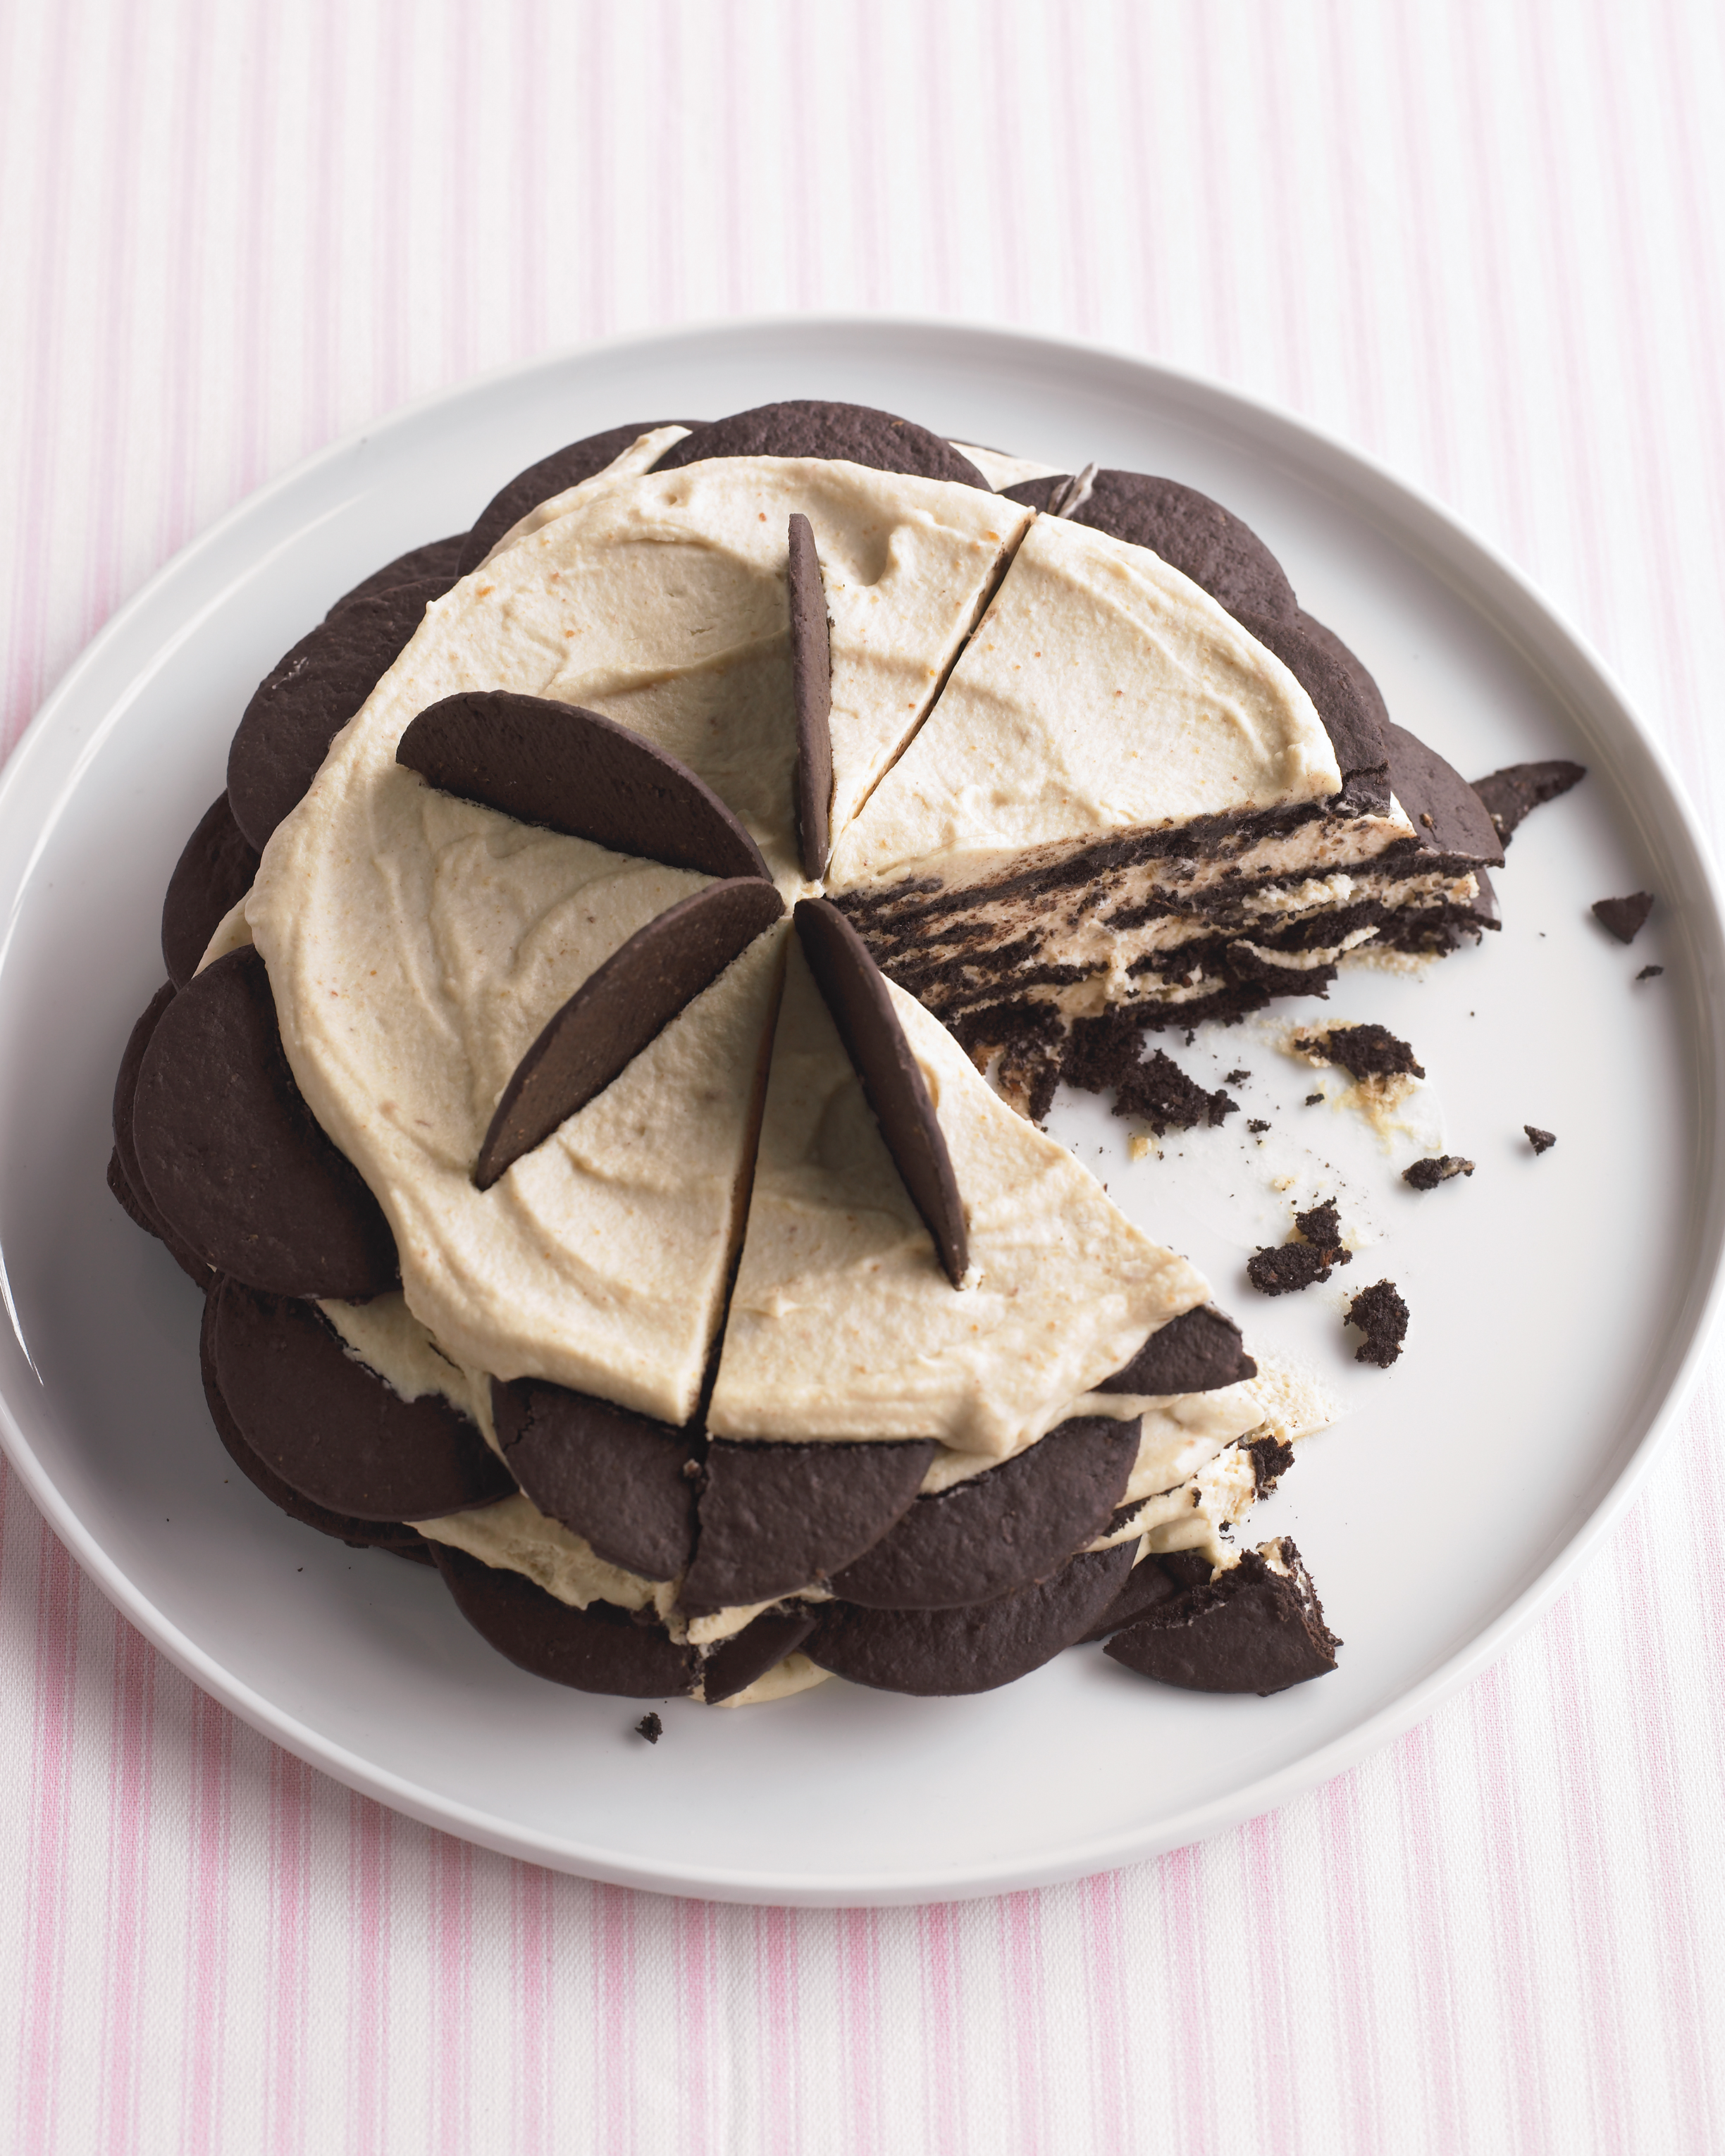 Chocolate Peanut-Butter Icebox Cake